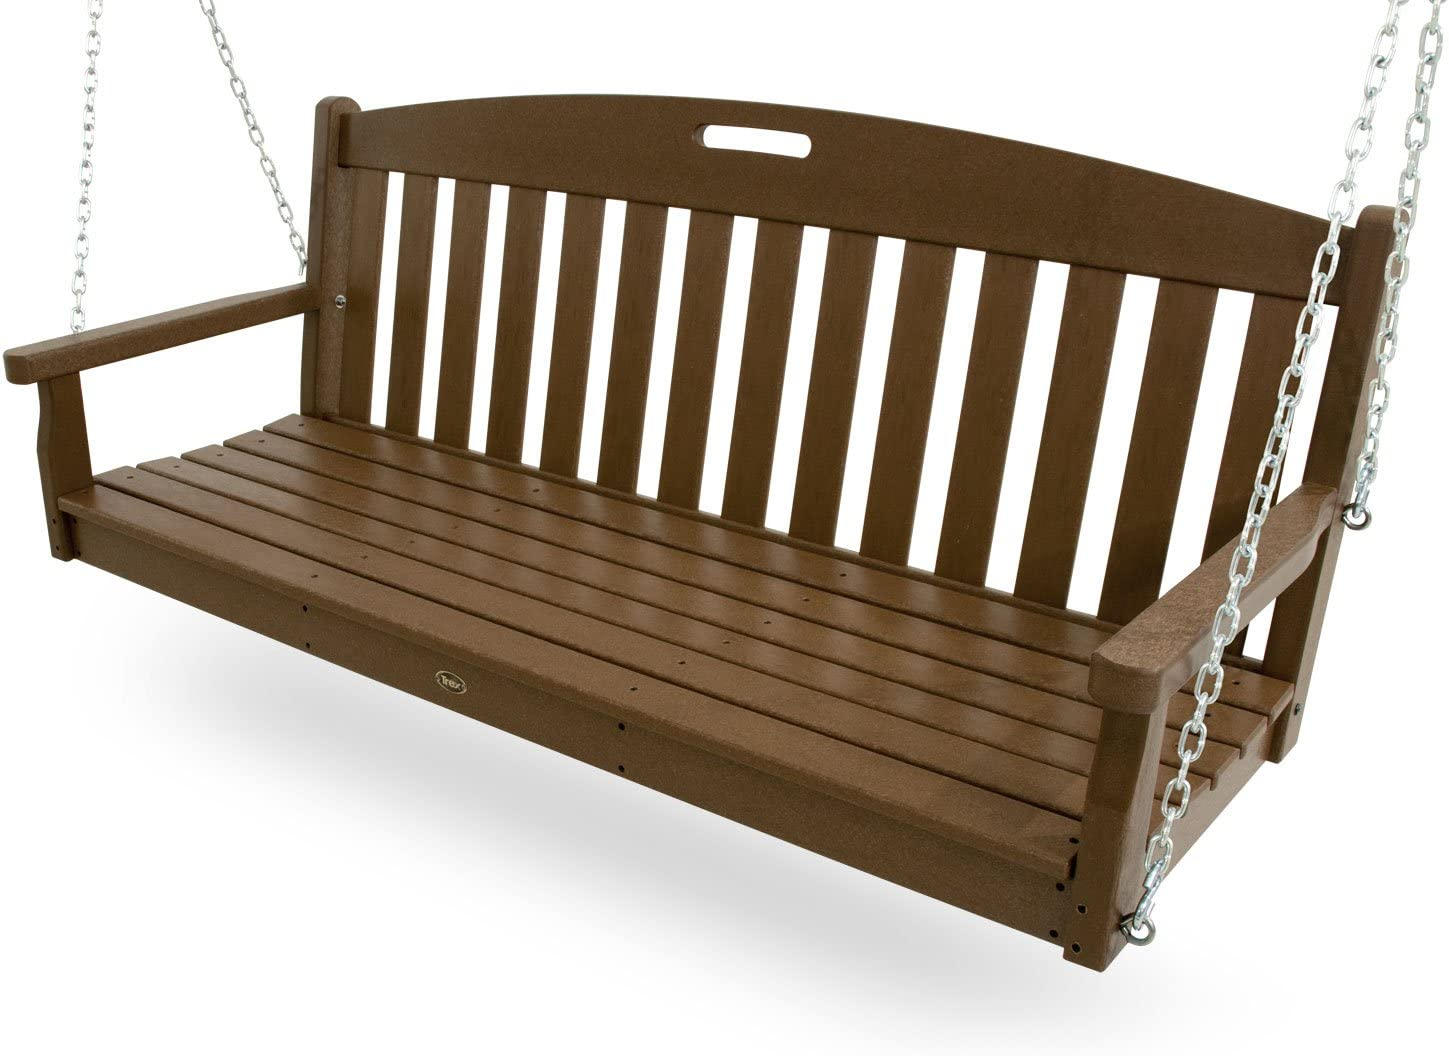 Trex Outdoor Furniture Yacht Club Swing, Tree House